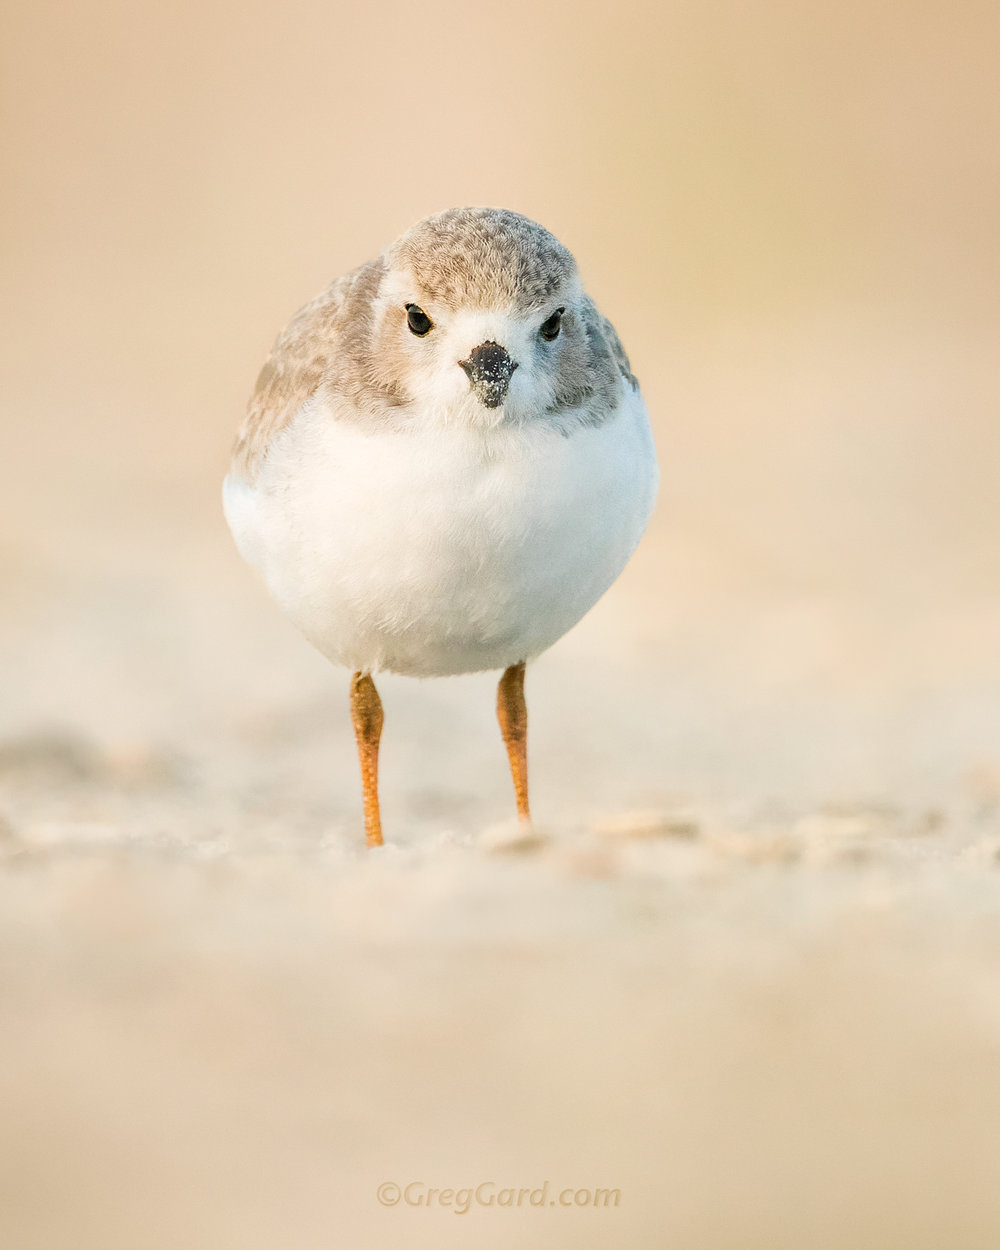 Juvenile Piping Plover - Nickerson Beach, New York